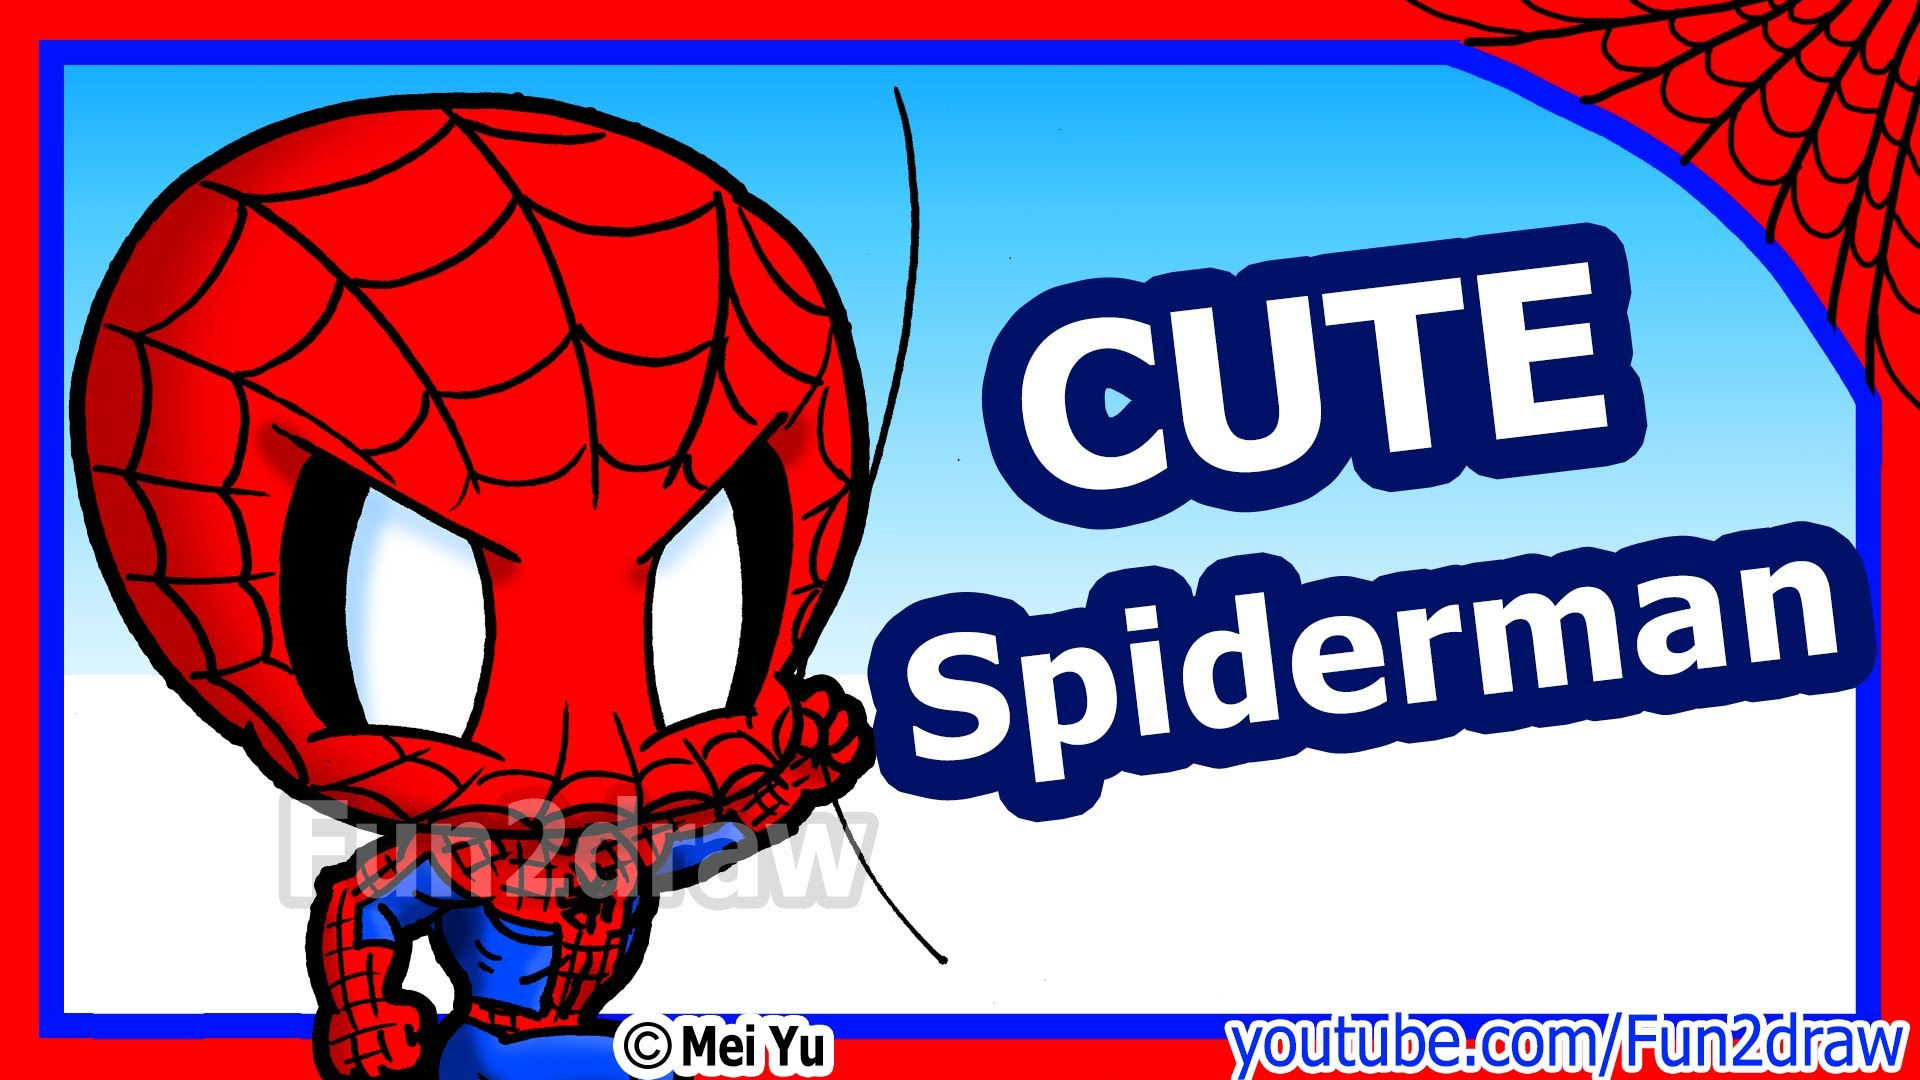 Drawn spider fun To Characters Spiderman Fun2draw YouTube